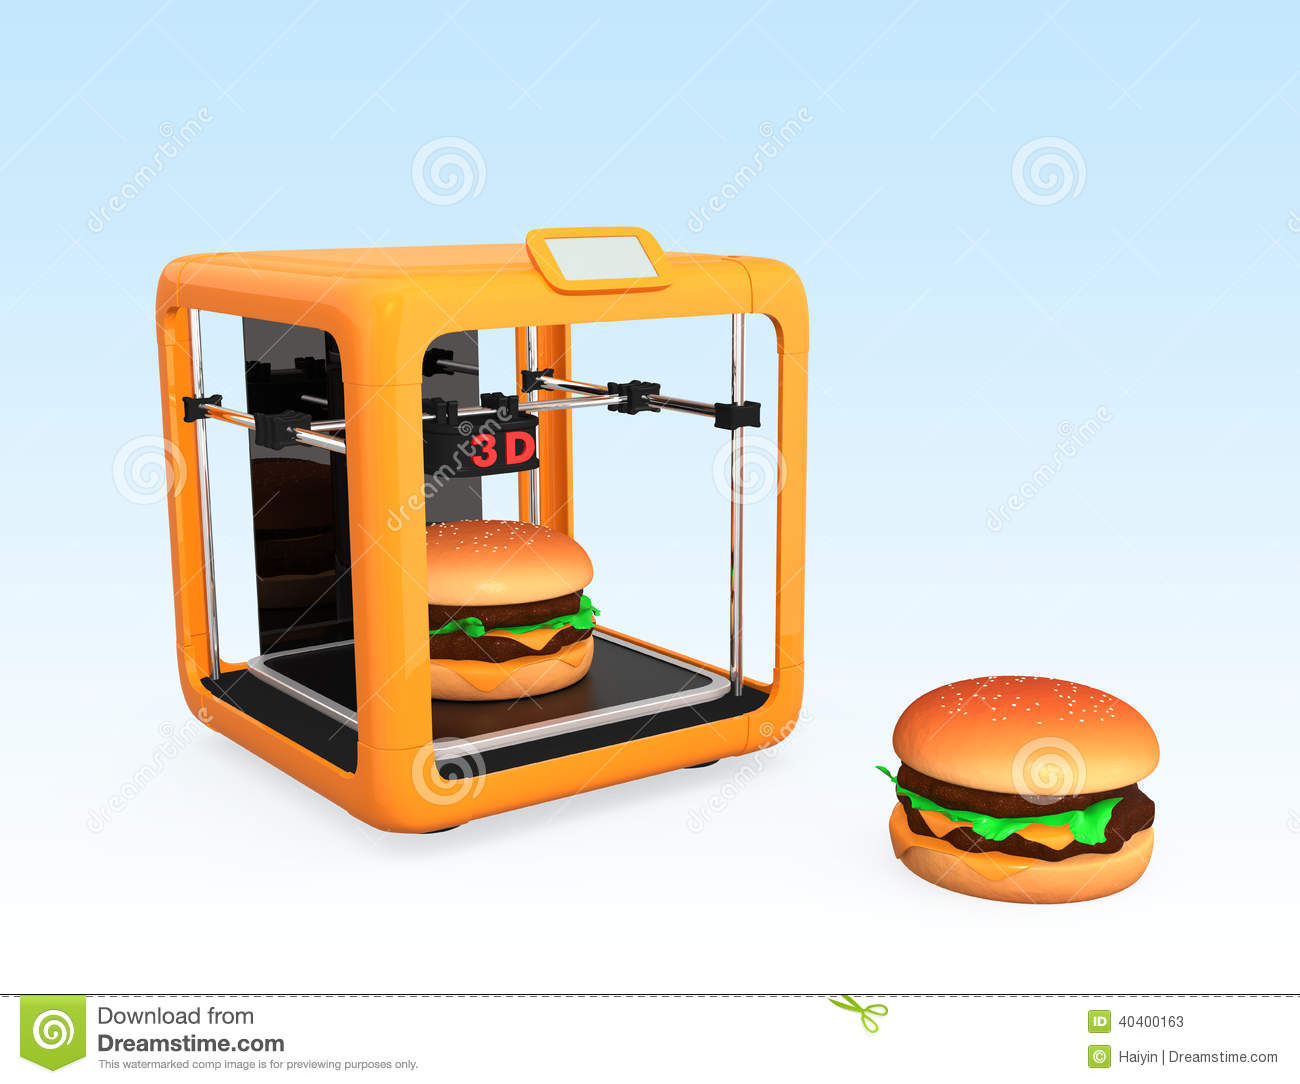 3D Printing Technology For Food Industry Stock Illustration - Image: 40400163